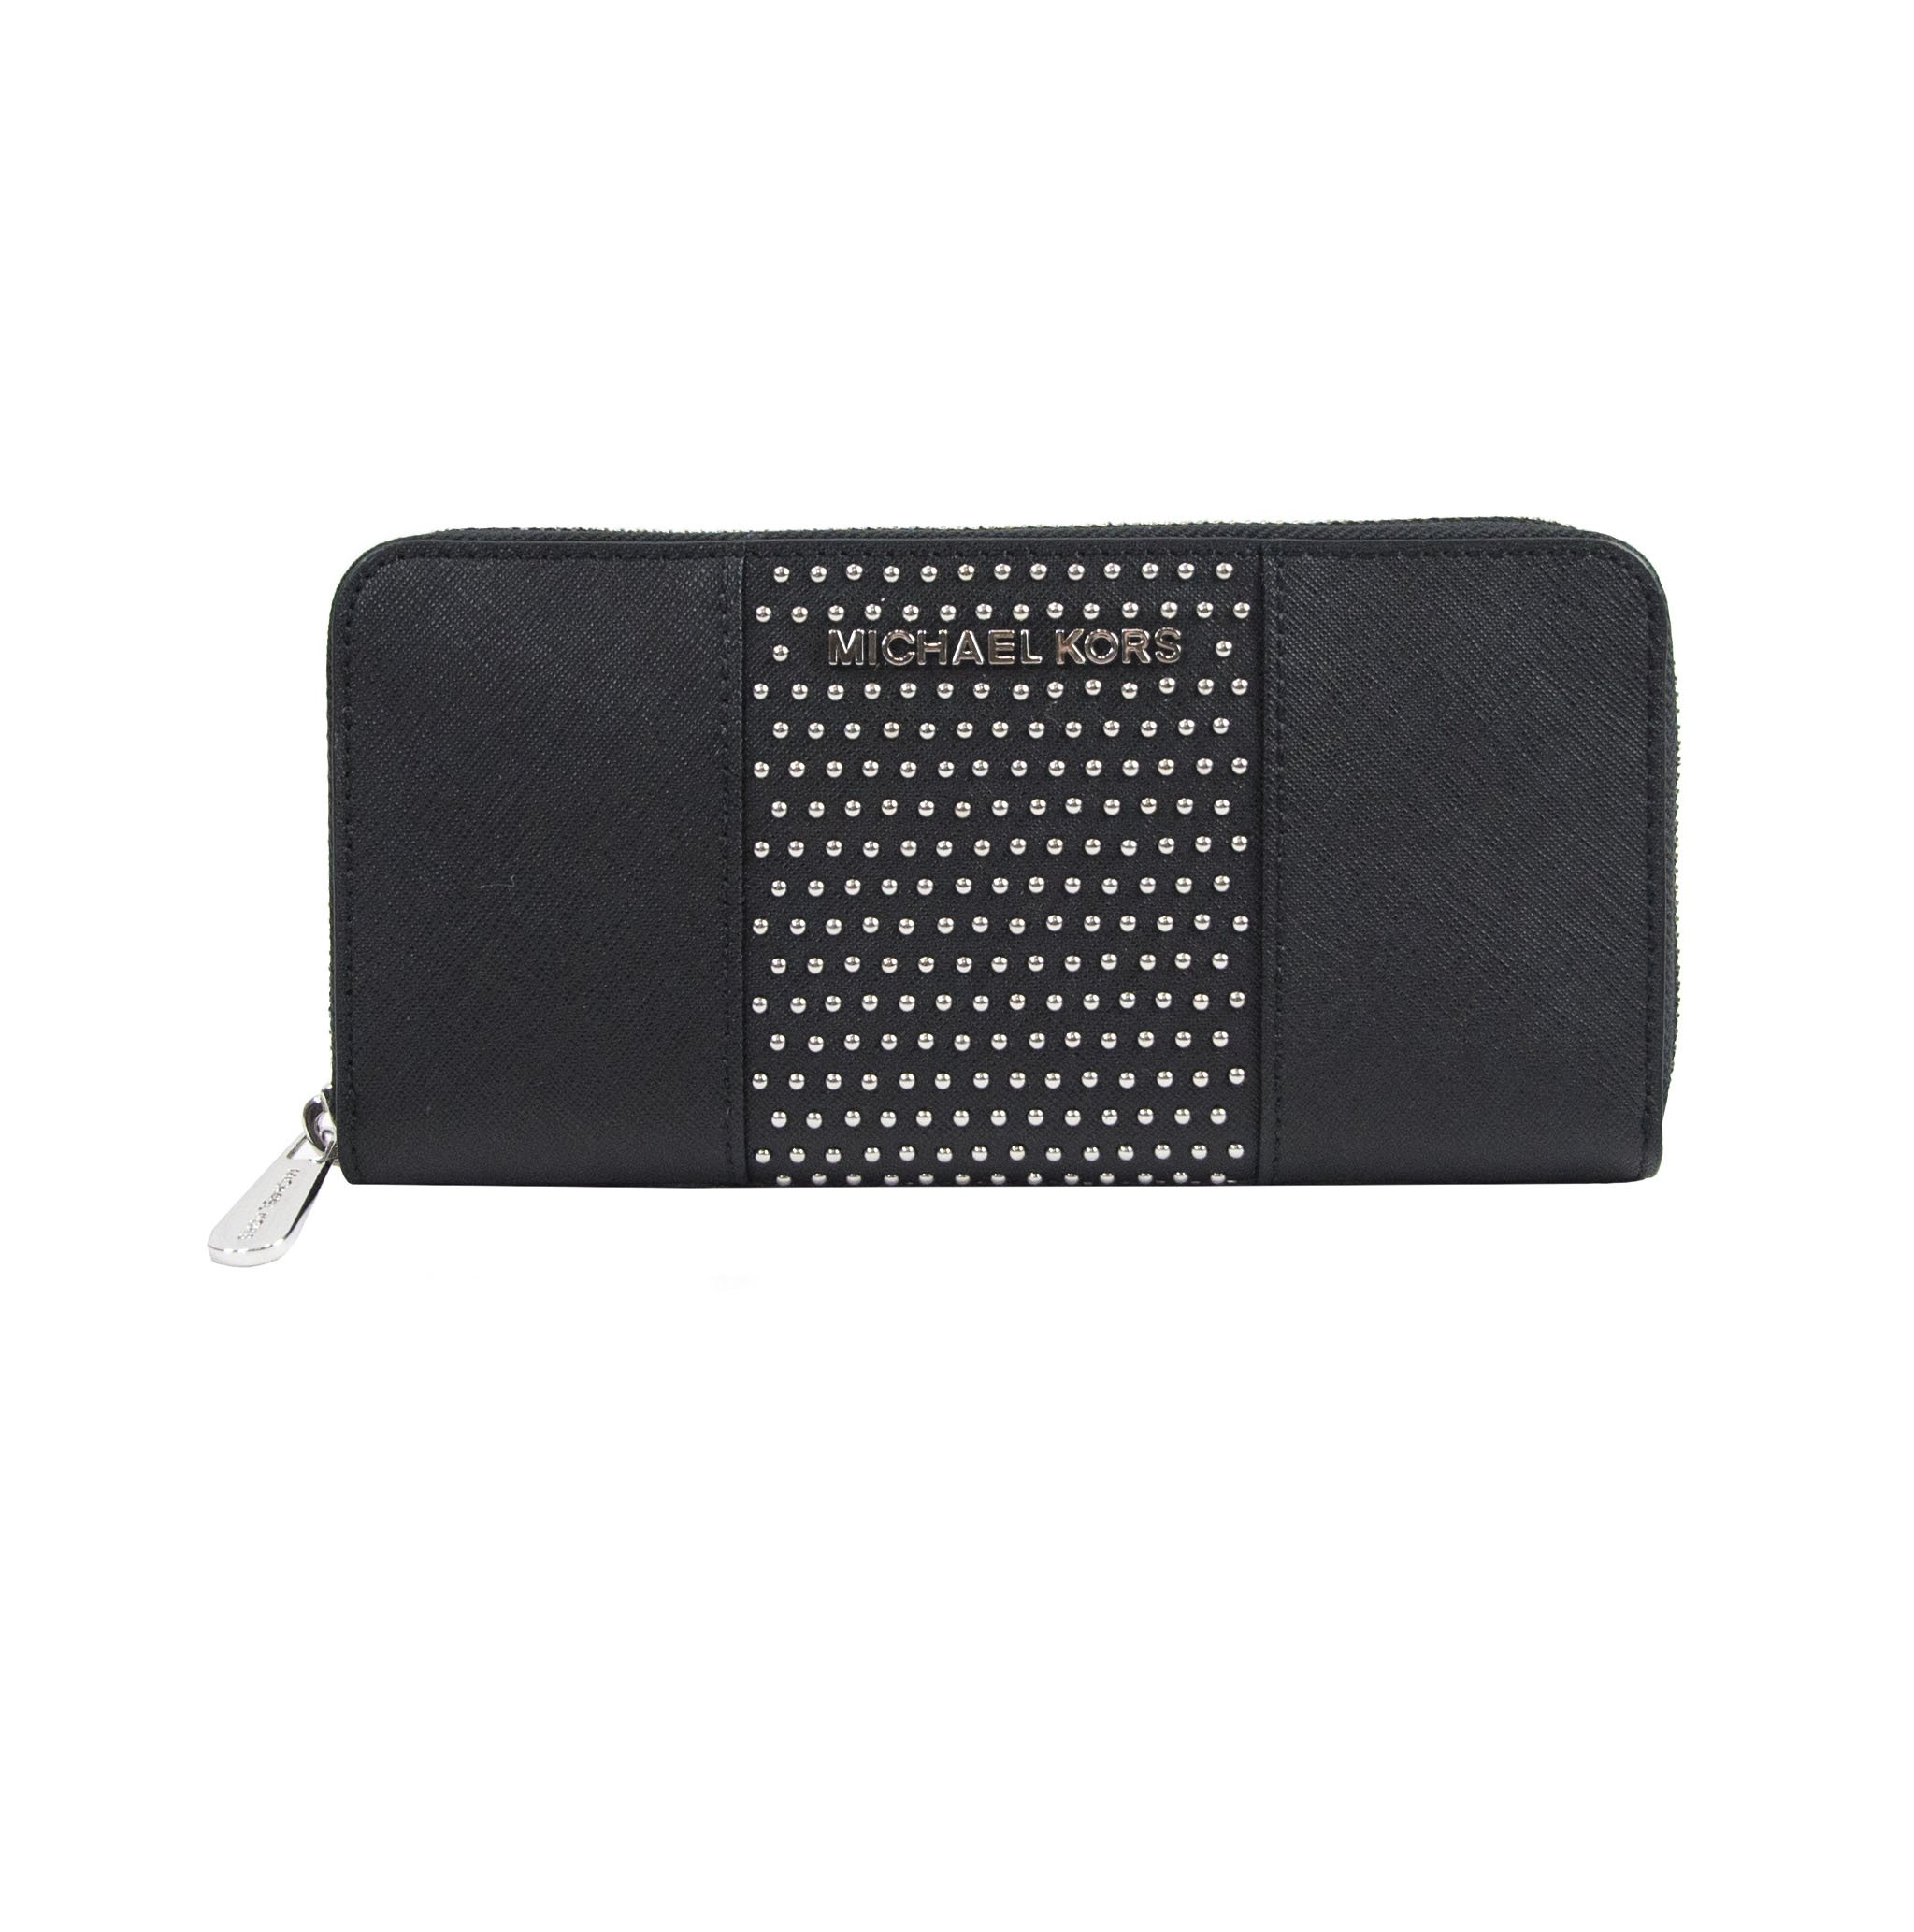 Michael Kors Black Saffiano Leather Microstud Travel Wallet